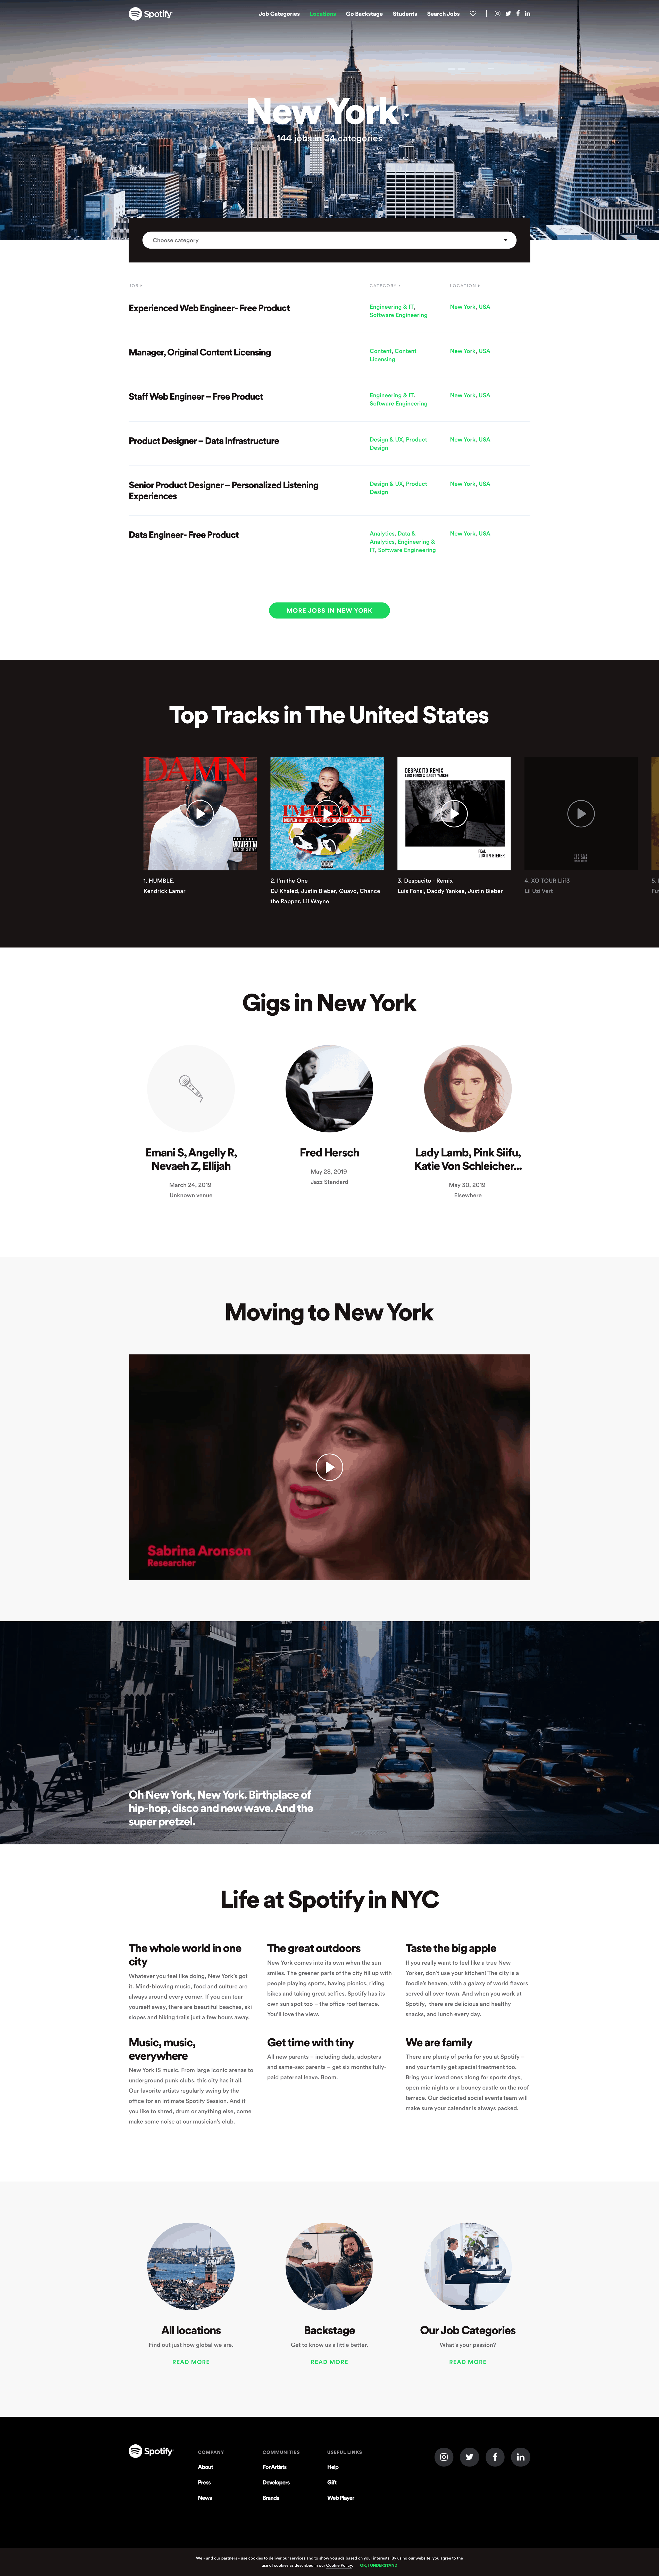 Join Us: New York by Spotify